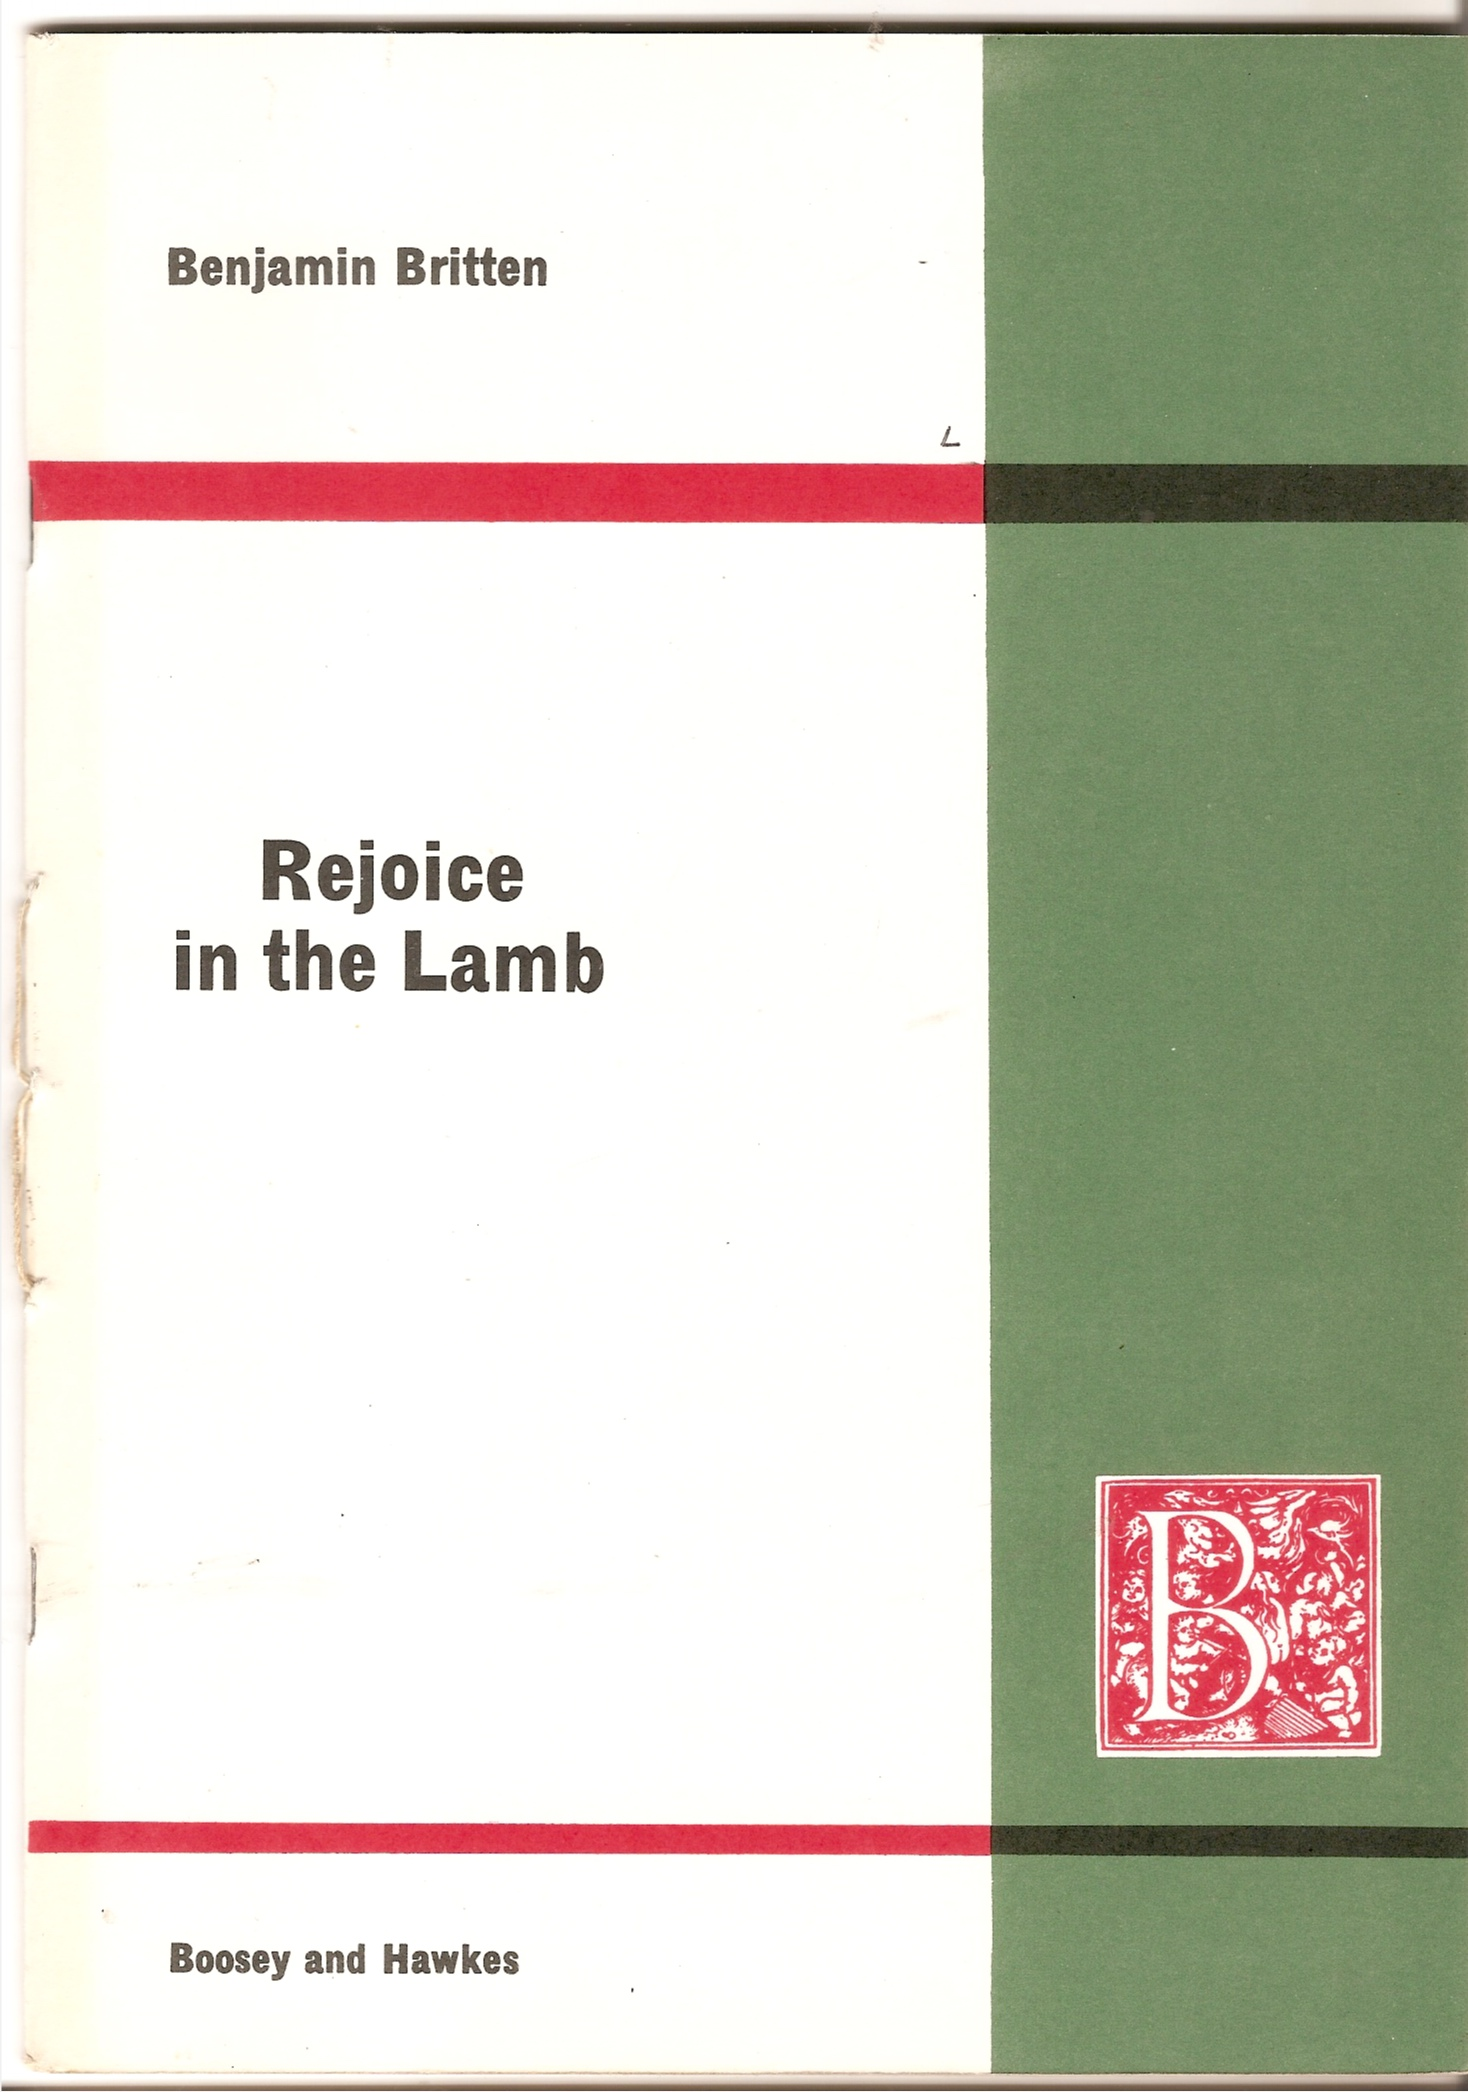 Image for Rejoice in the Lamb. Festival Cantata, for Treble, Alto, Tenor and Bass Soloists, Choir and Organ Op. 30. Words by Christopher Smart